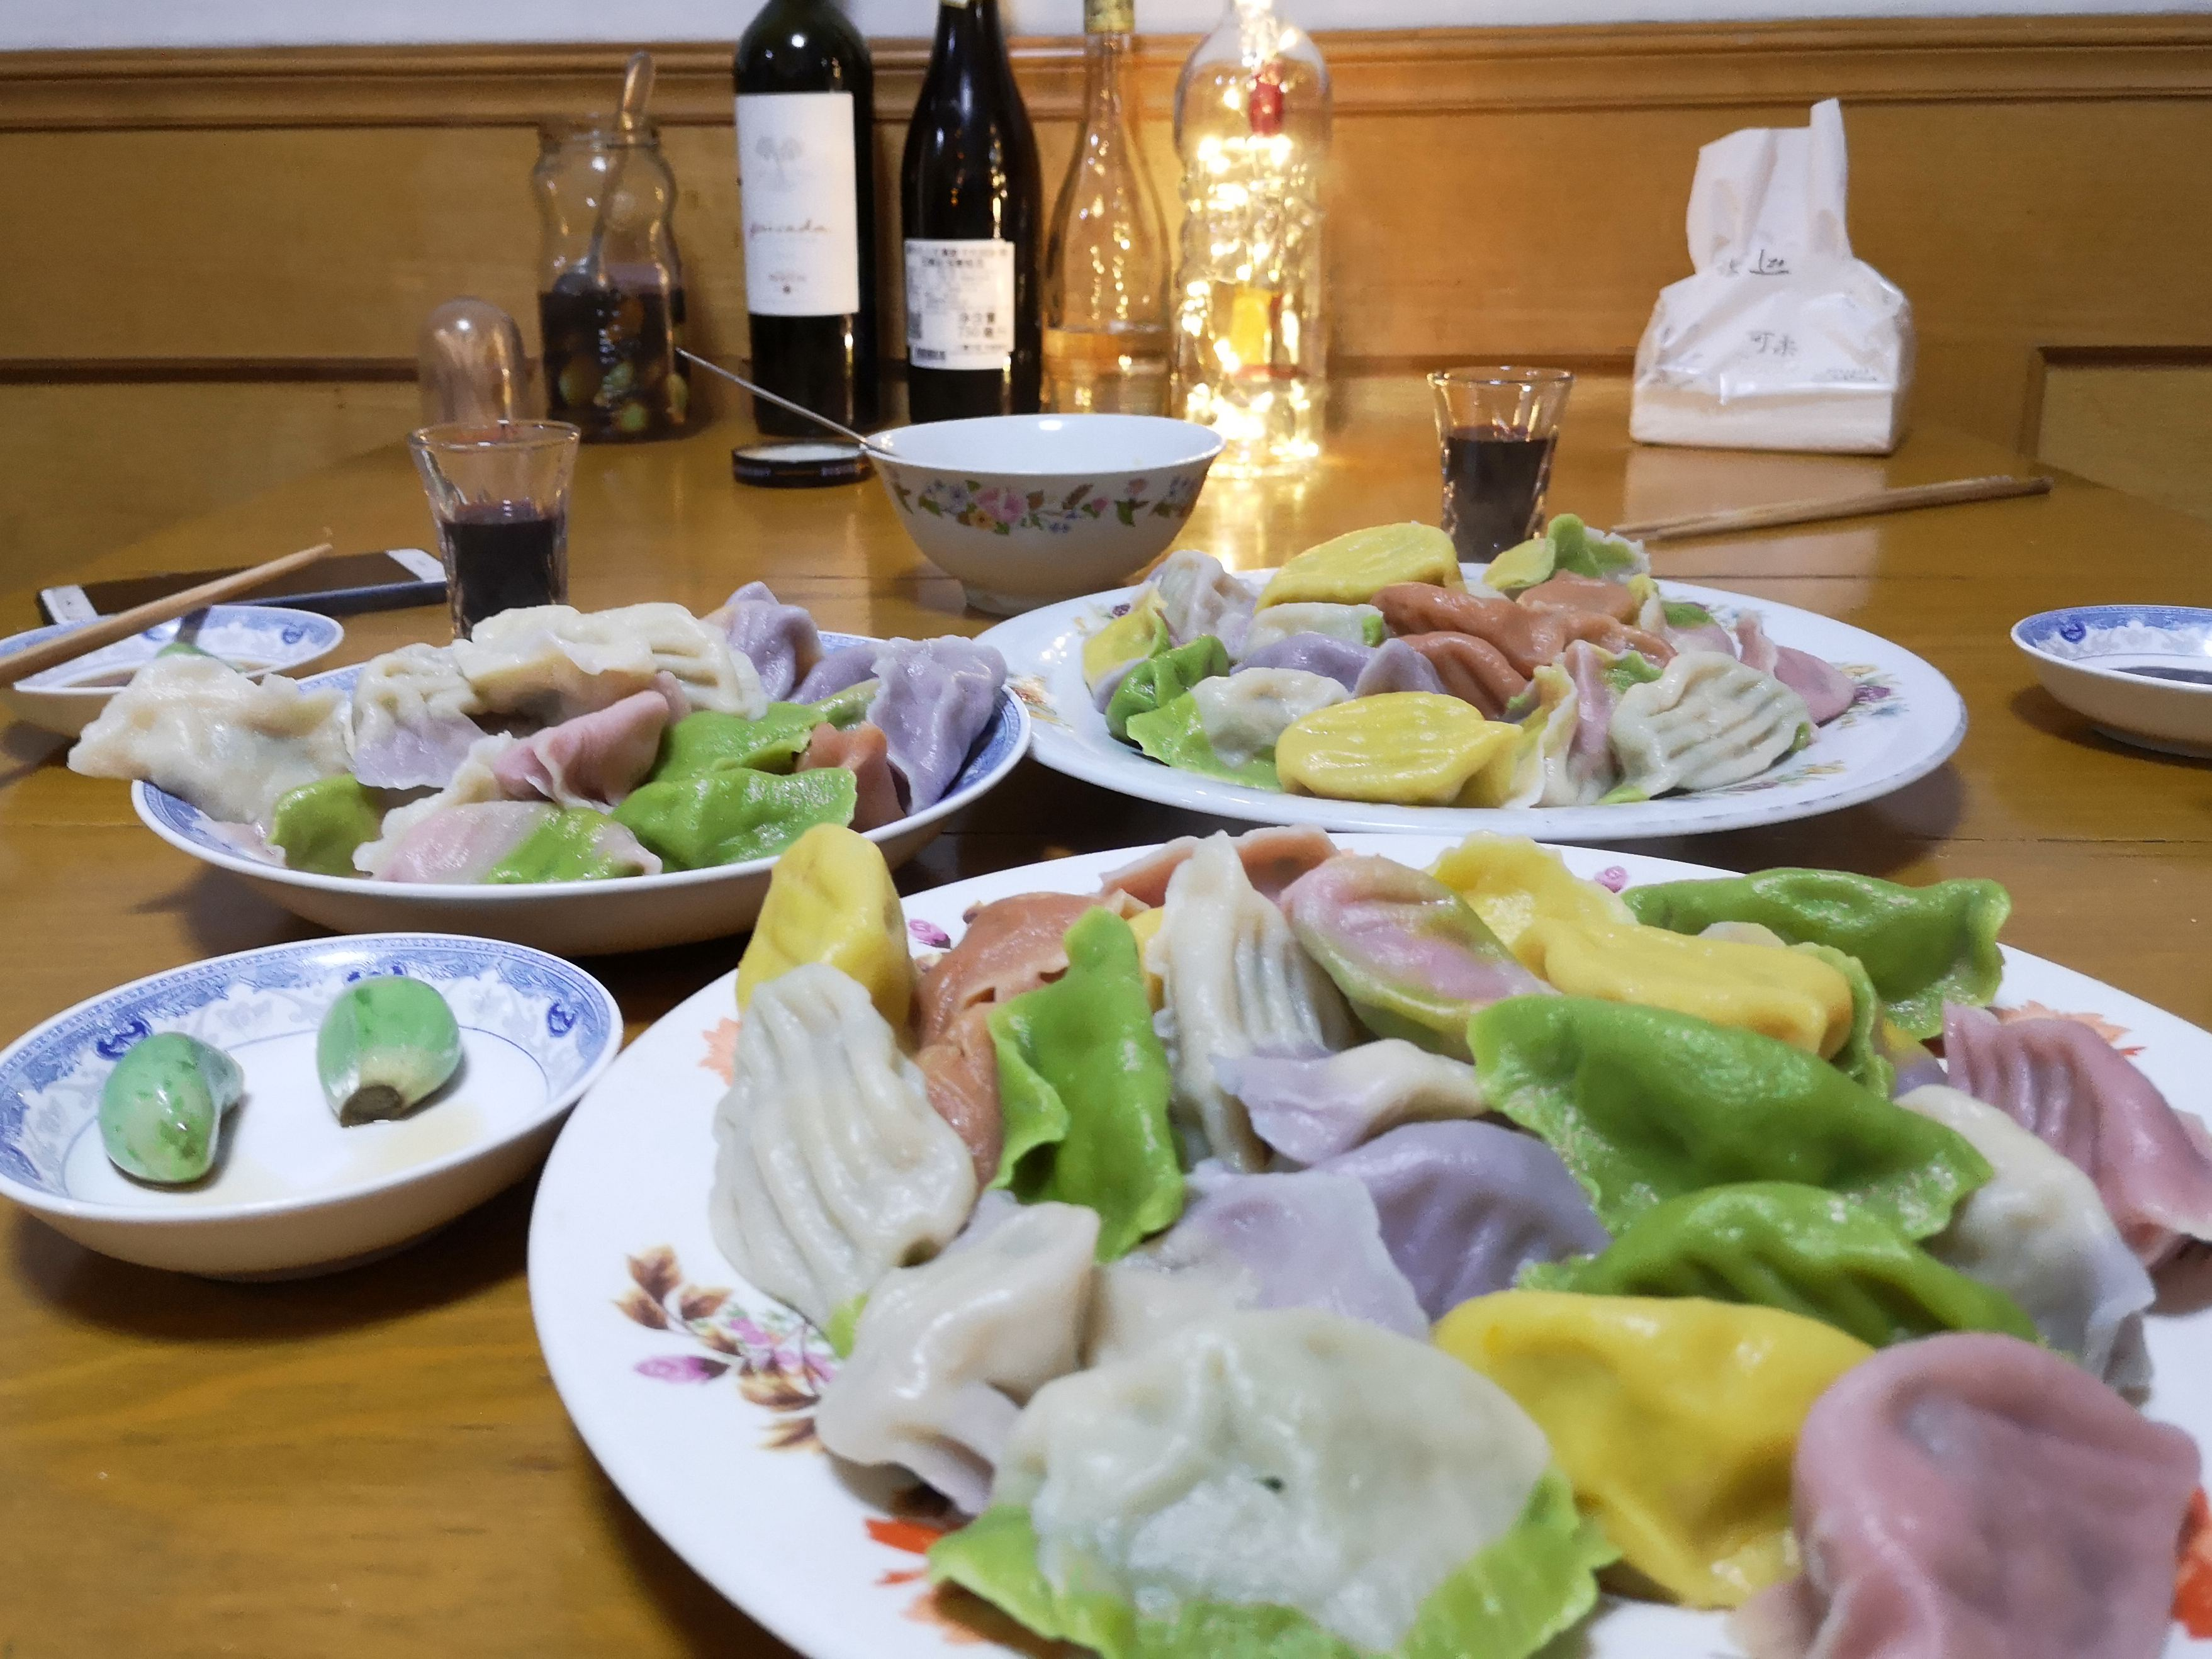 Spring Festival Eve dinner cuisine across China (II)